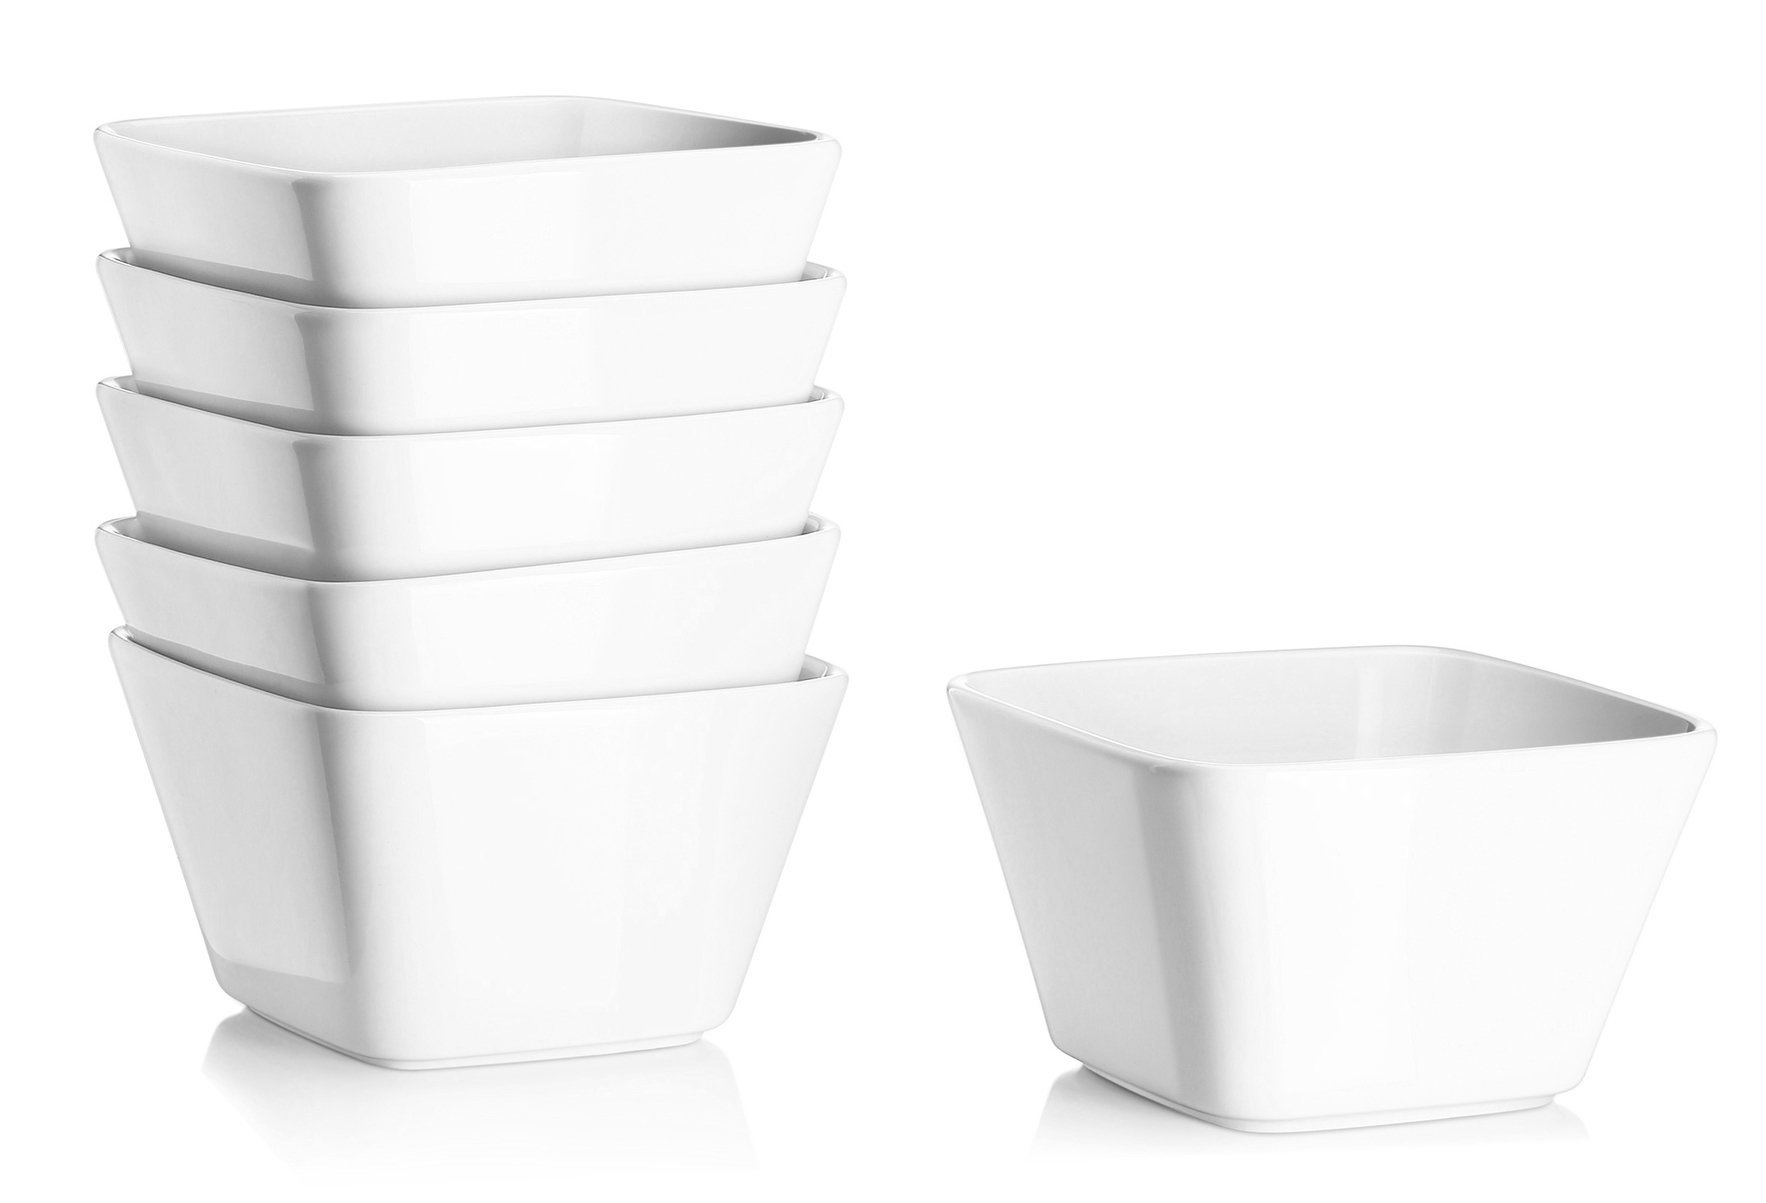 DOWAN 20 Ounce Porcelain Square Cereal Bowls - 6 Packs ,White by DOWAN (Image #2)